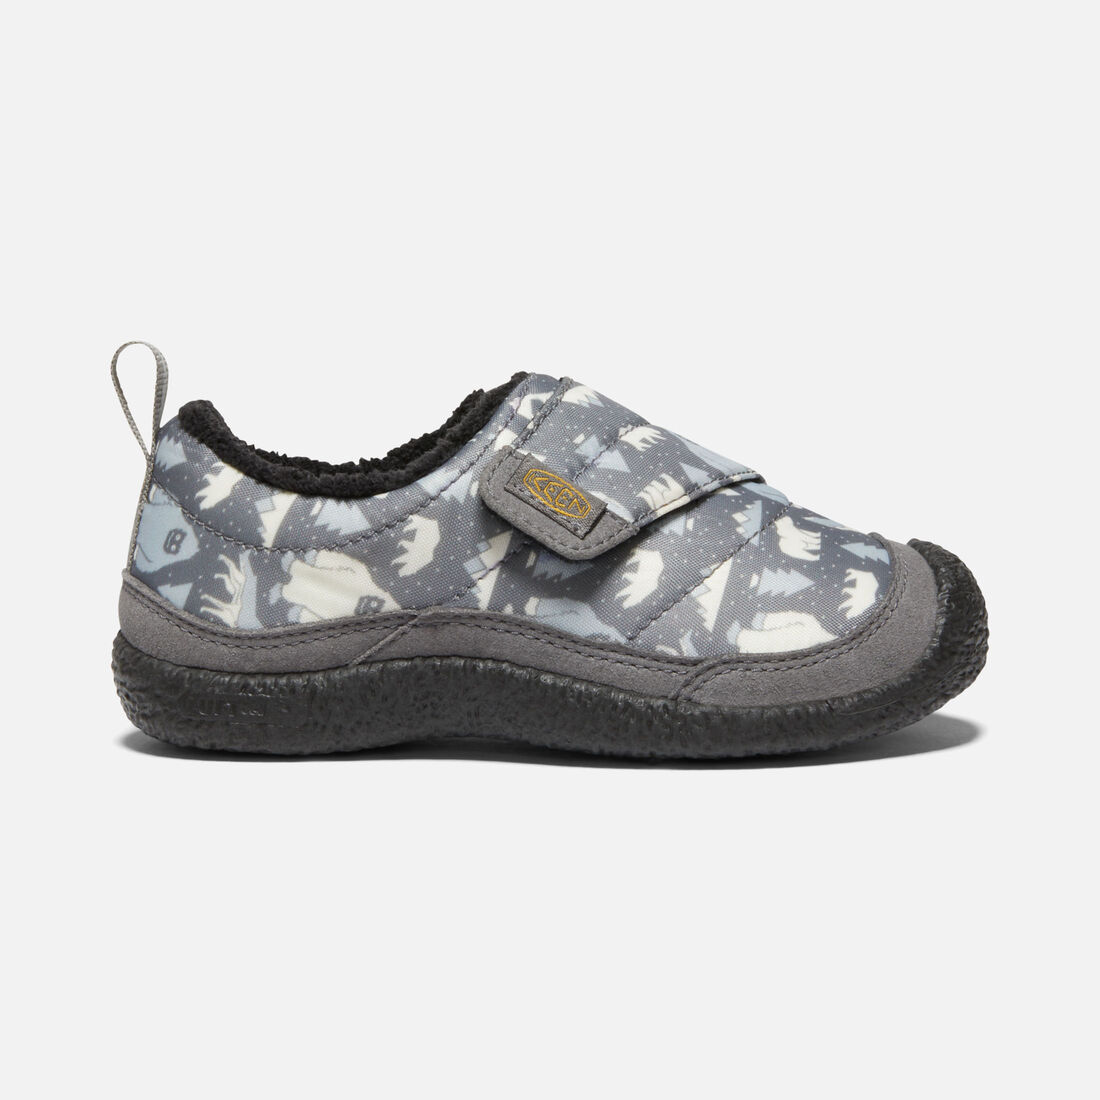 Little Kids' Howser Wrap in Steel Grey/Star White - large view.